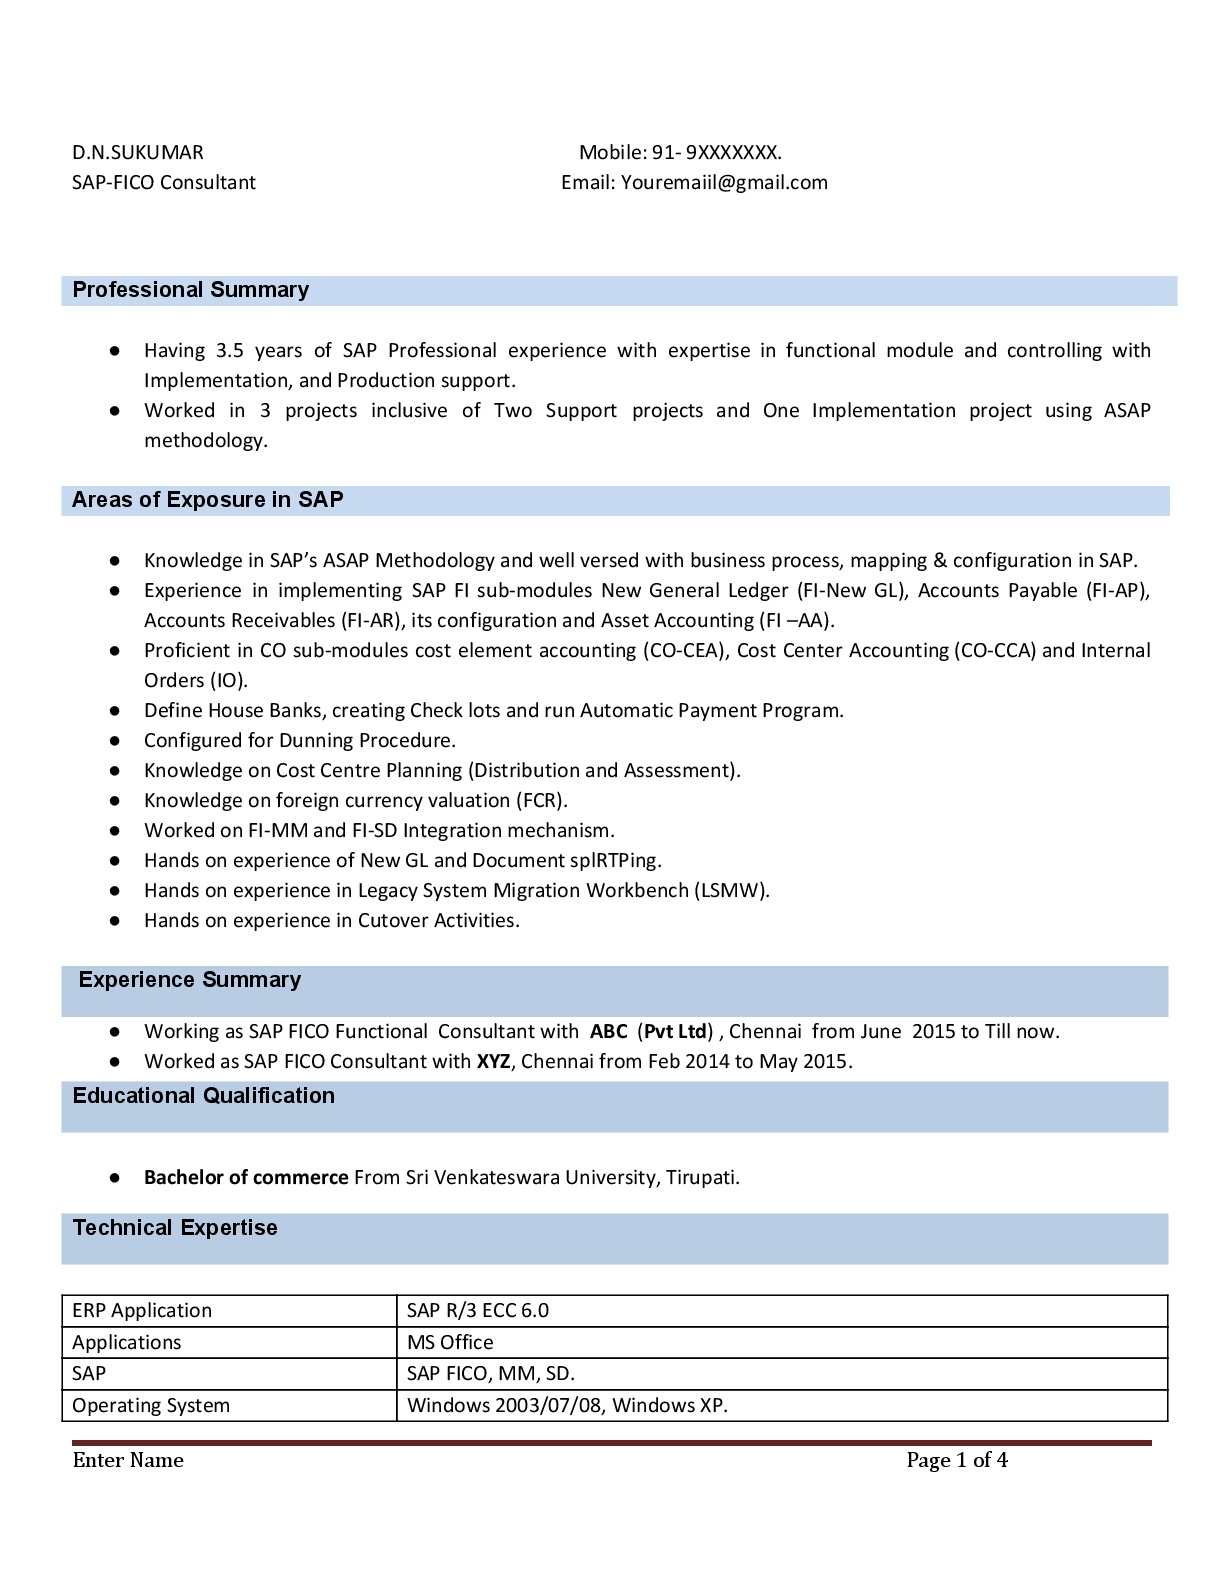 sap fico resume with years experience instant samples projects now consultant 5yrs Resume Sap Fico Consultant Resume 3 Years Experience